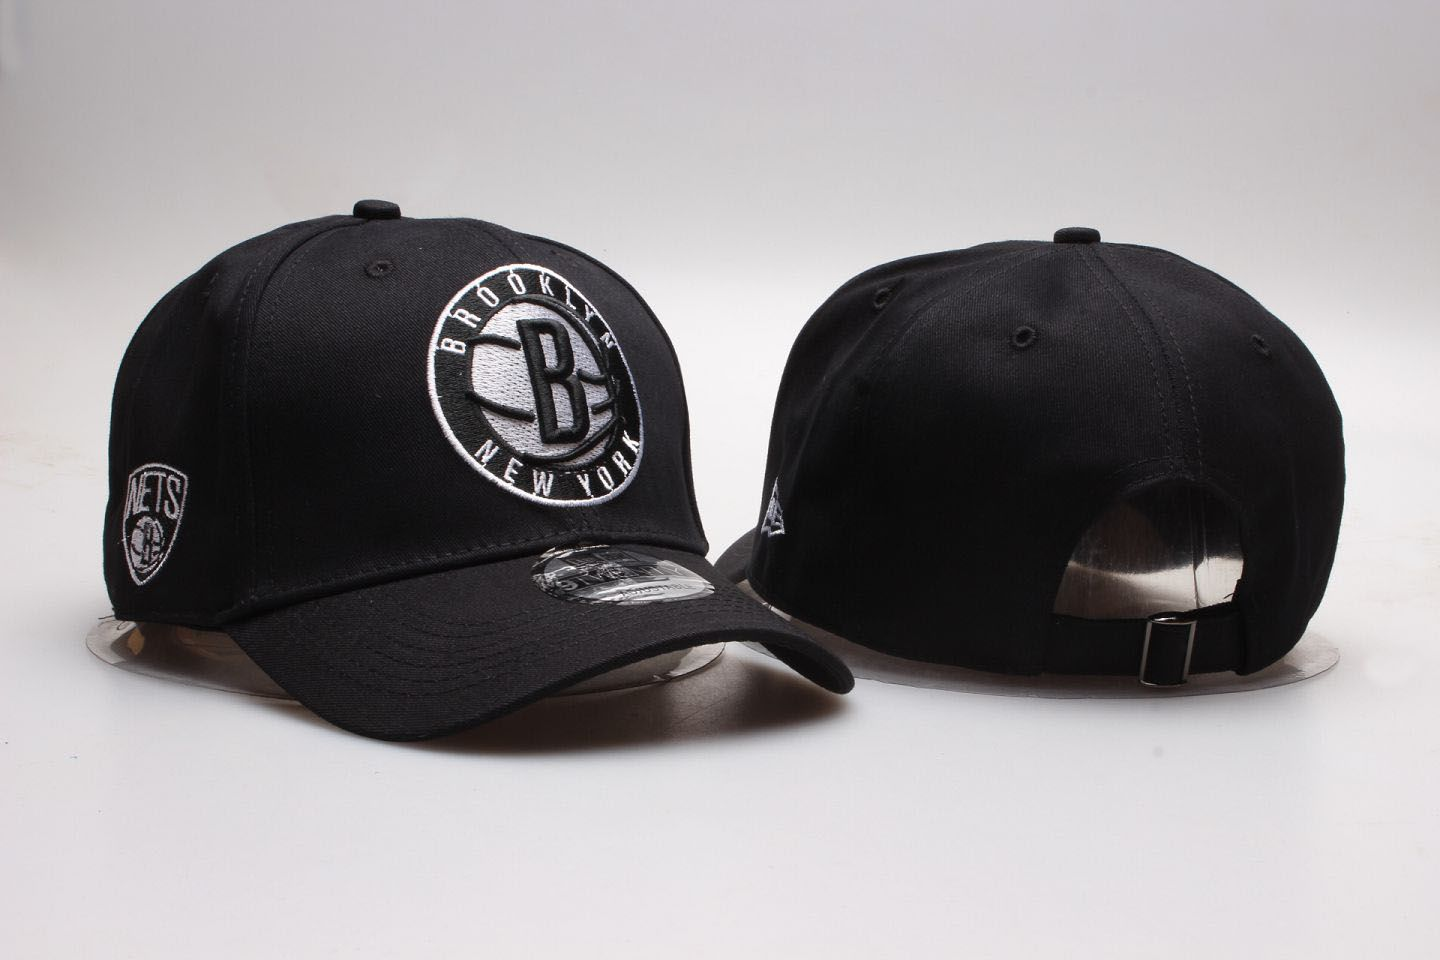 NBA Brooklyn Nets Snapback hat 201811252